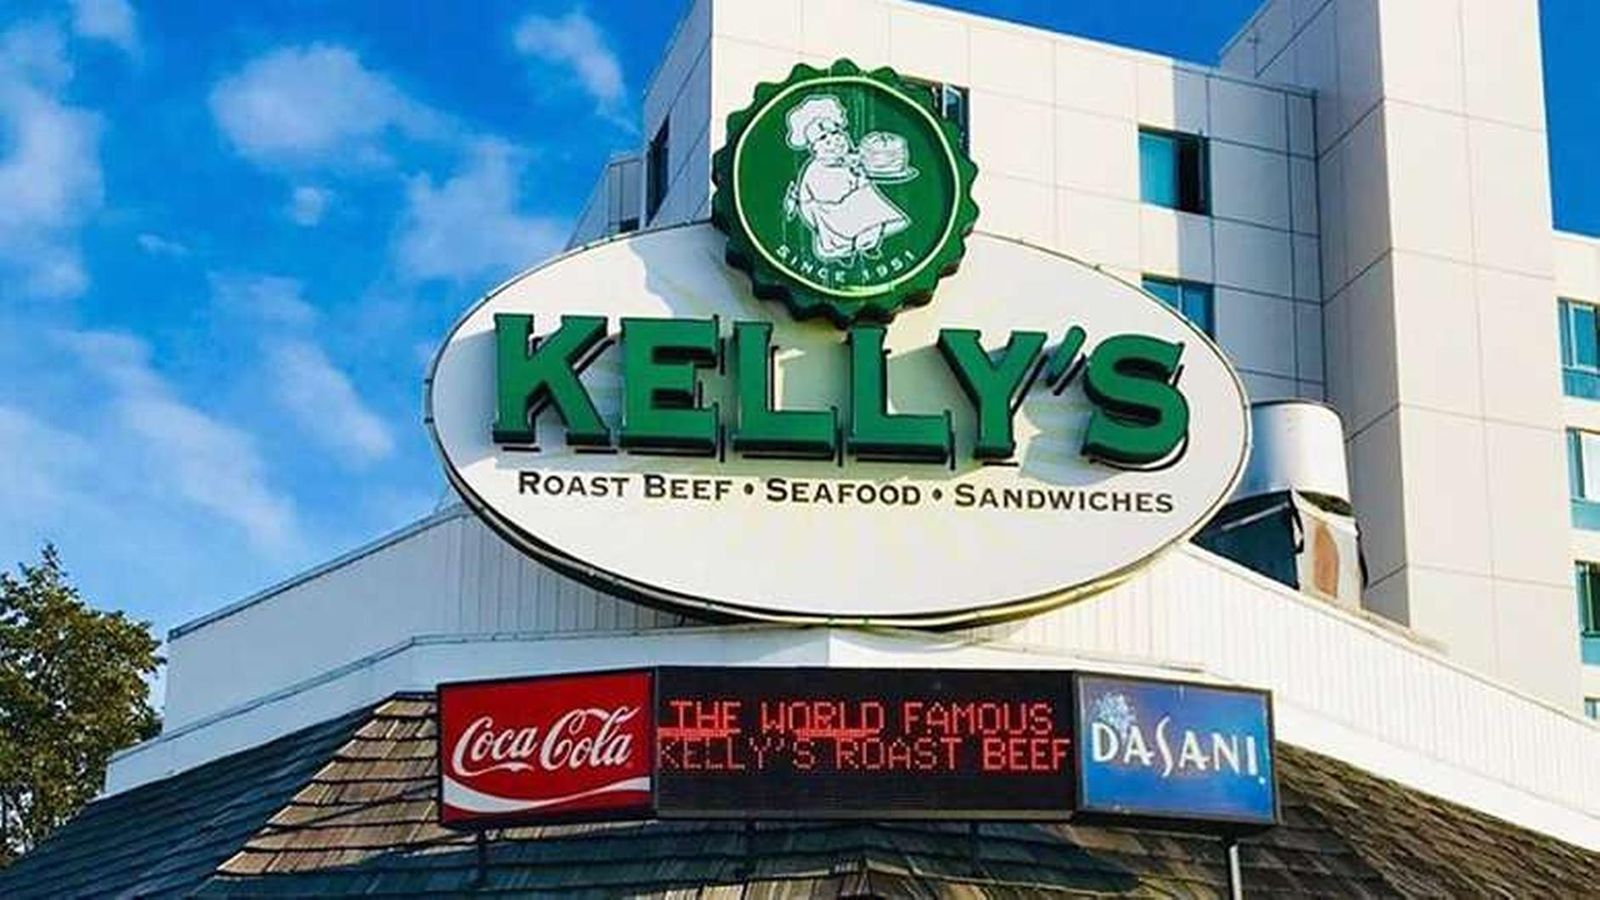 Kelly's Roast Beef Plans Expansion to The Granite State